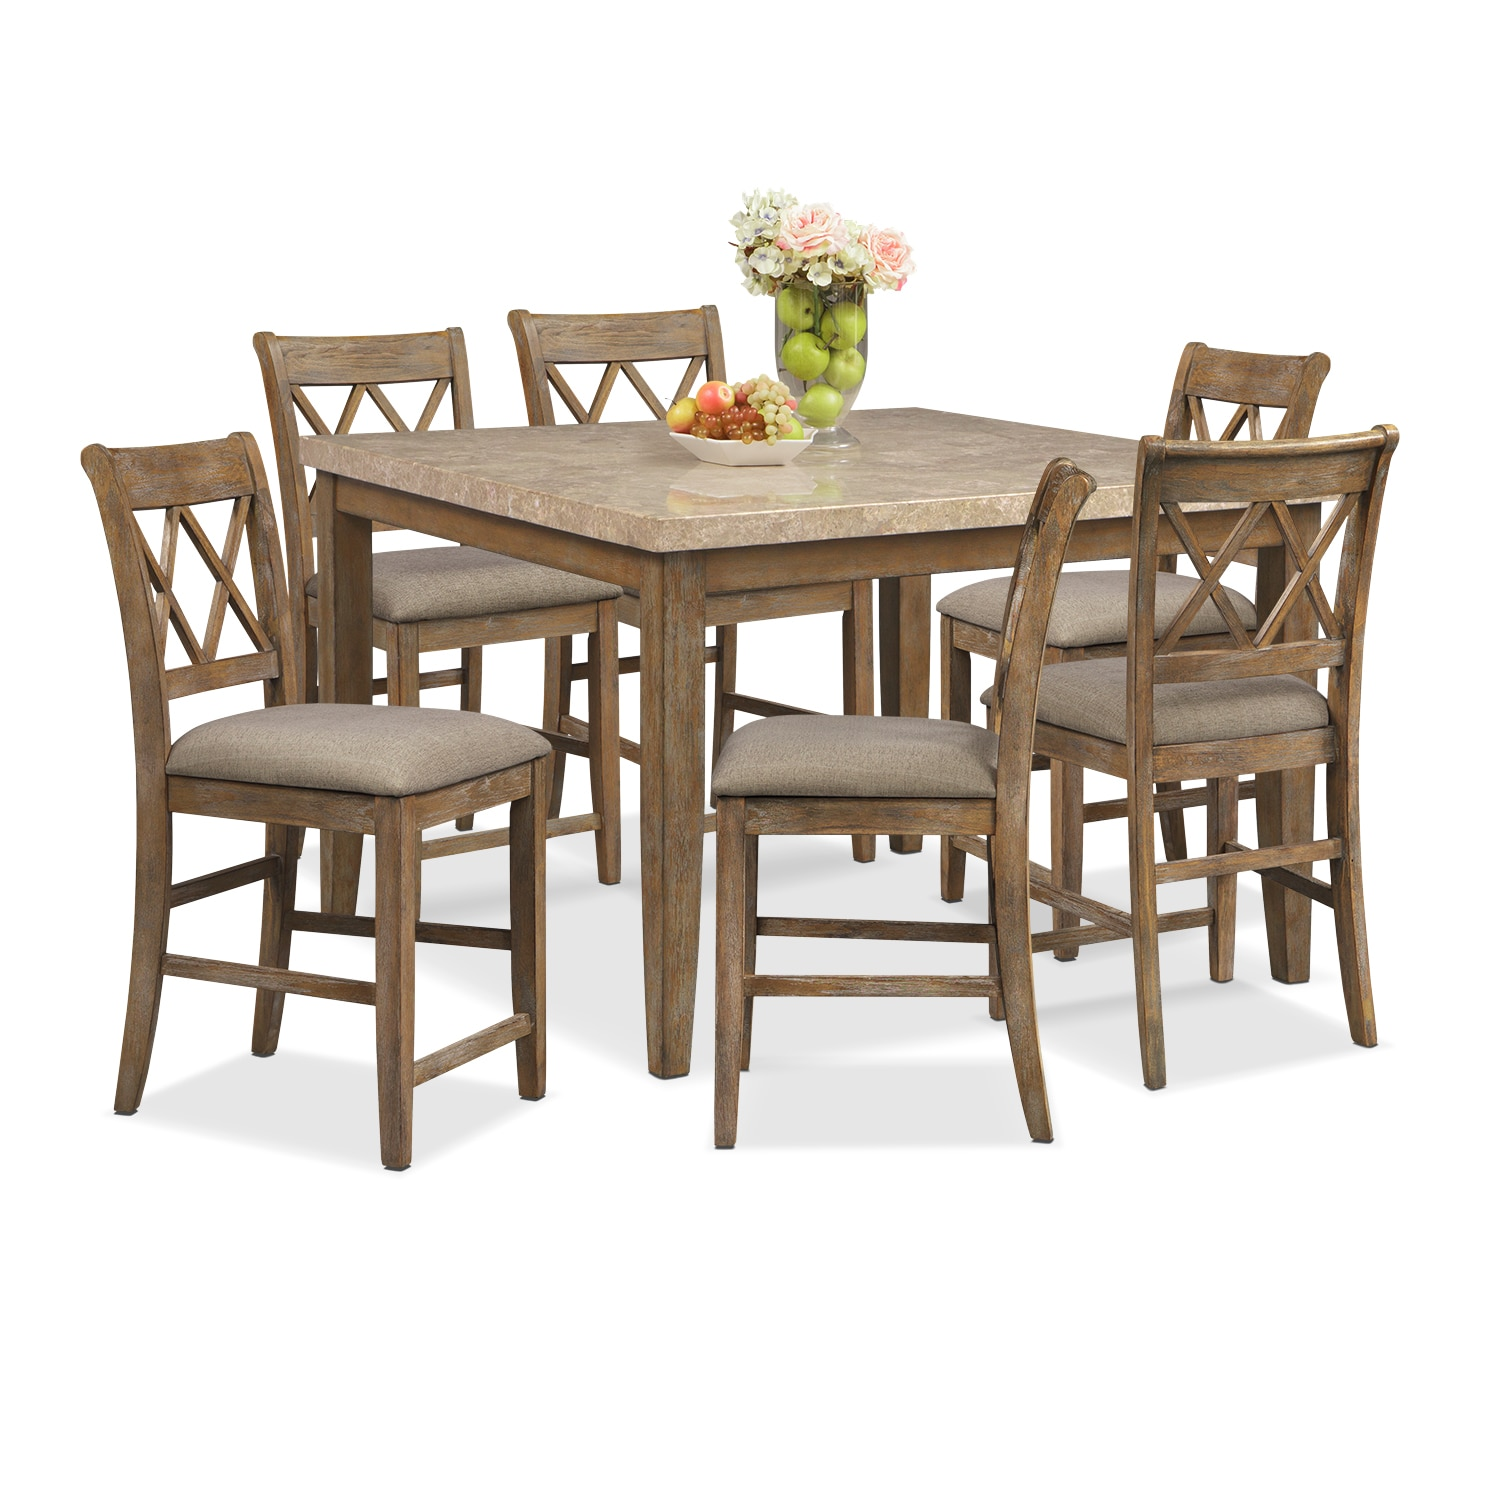 Dining Room Furniture - Sedona Gray 7 Pc. Counter-Height Dining Room